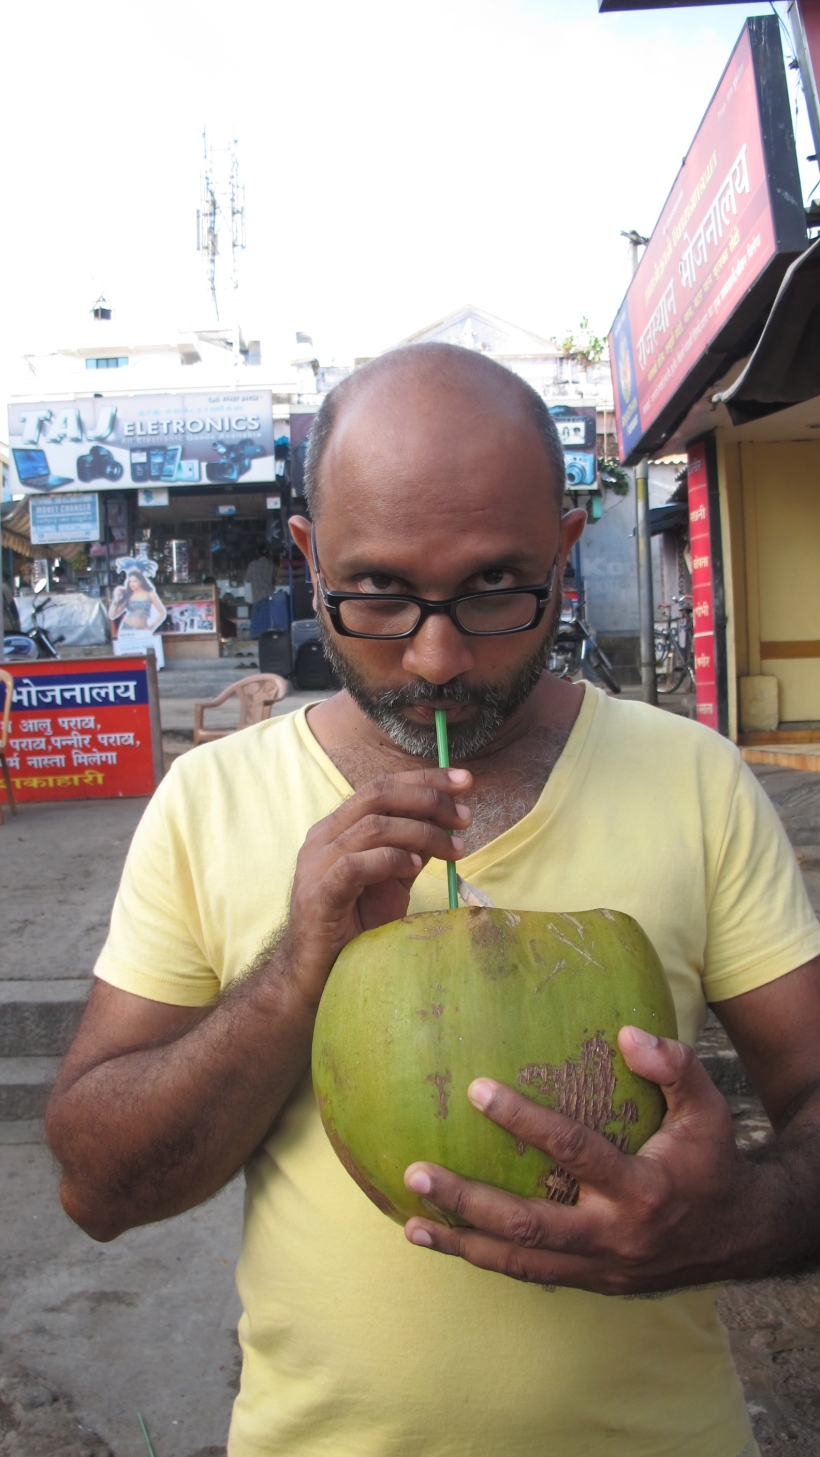 Master Mahesh and his coconut.